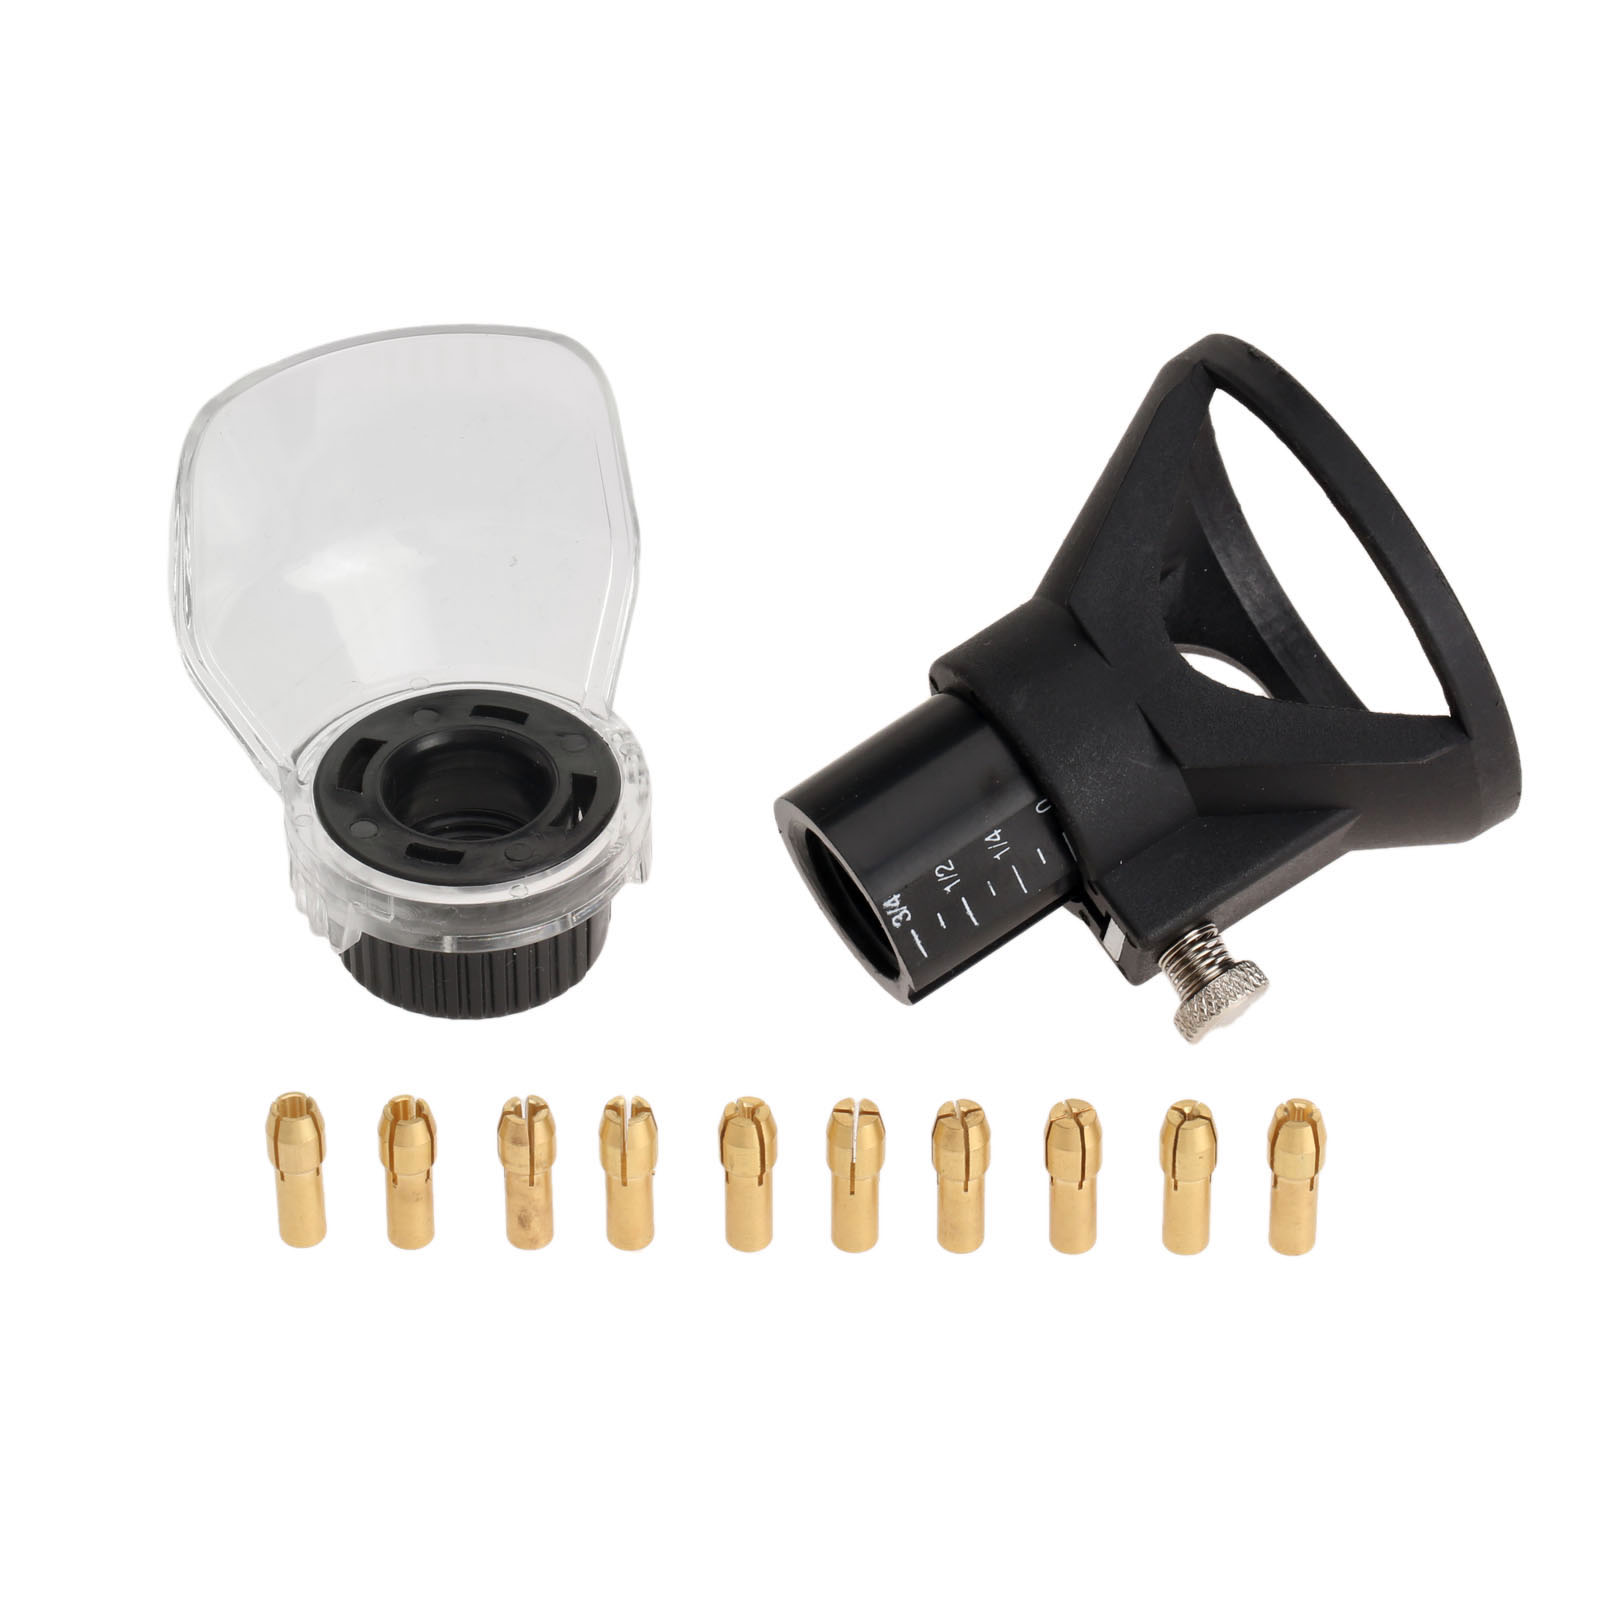 12Pcs Rotary Tool Attachment Accessories Dremel Drill Dedicated Locator Horn +0.5-3.2MM Brass Collets Chuck 4.8MM Shank +Cover